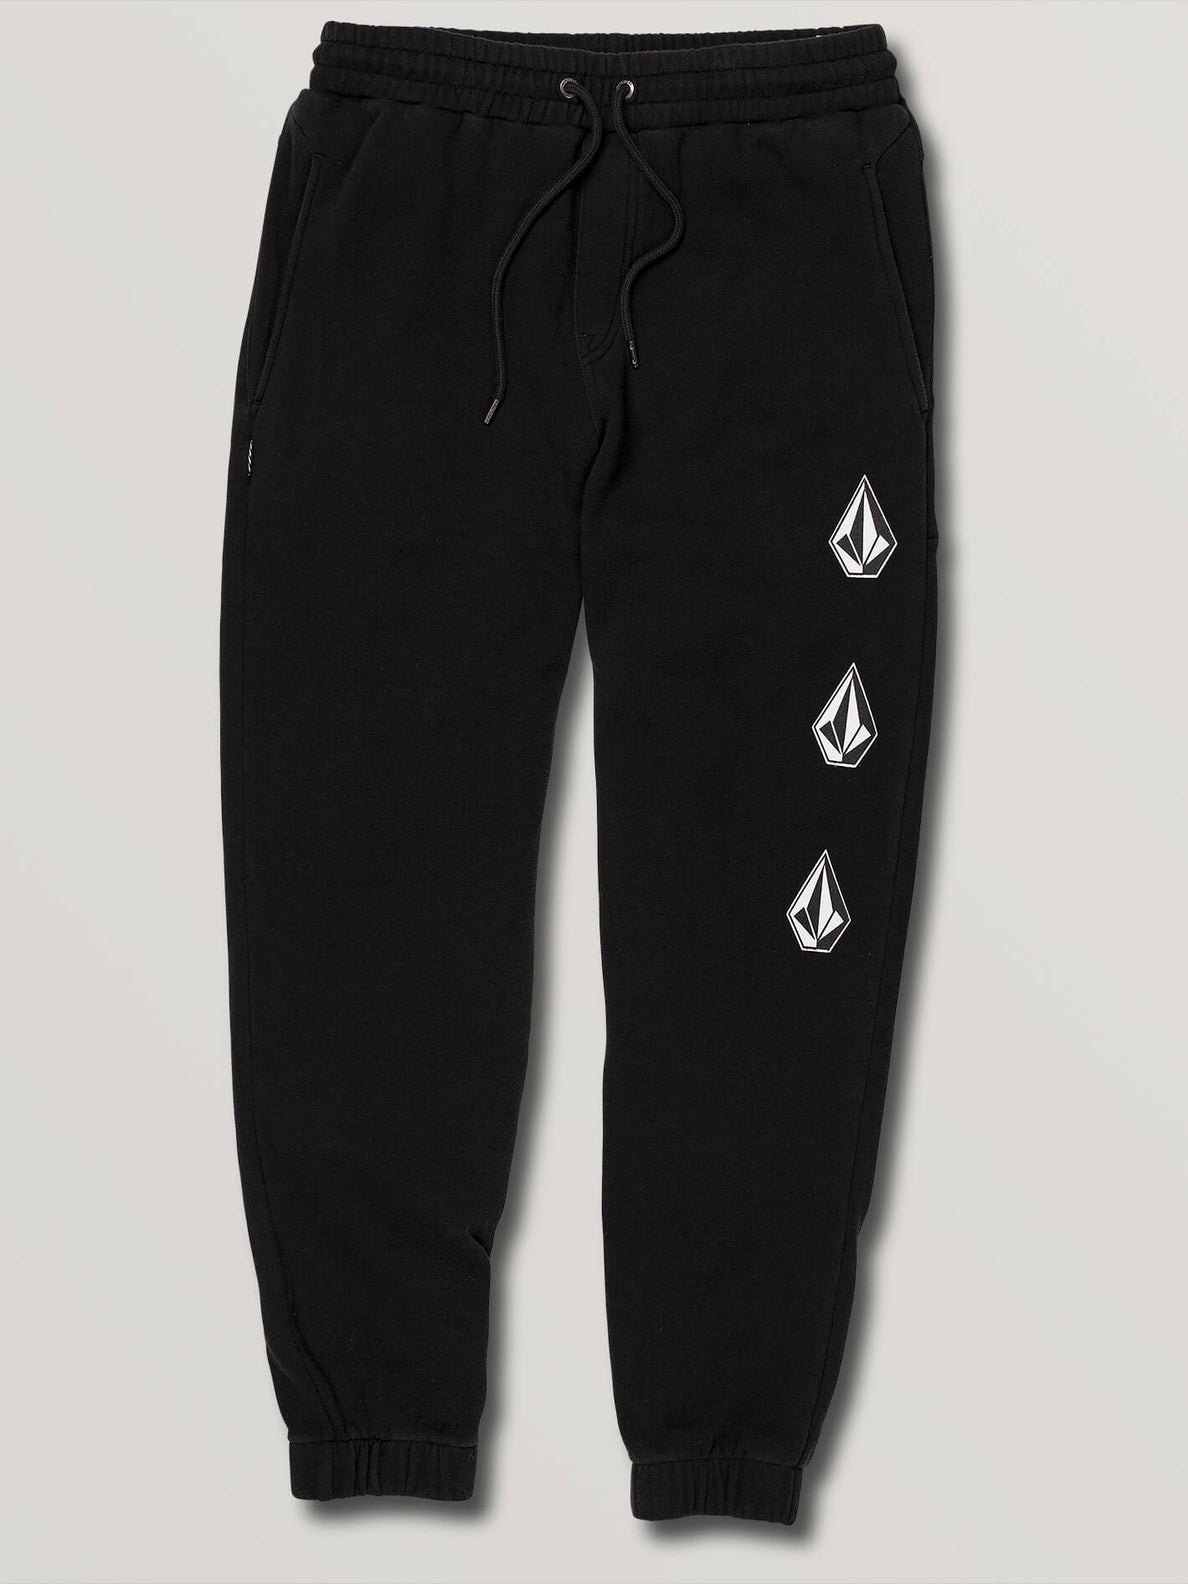 Deadly Stones Pants - Black (A1211900_BLK) [3]